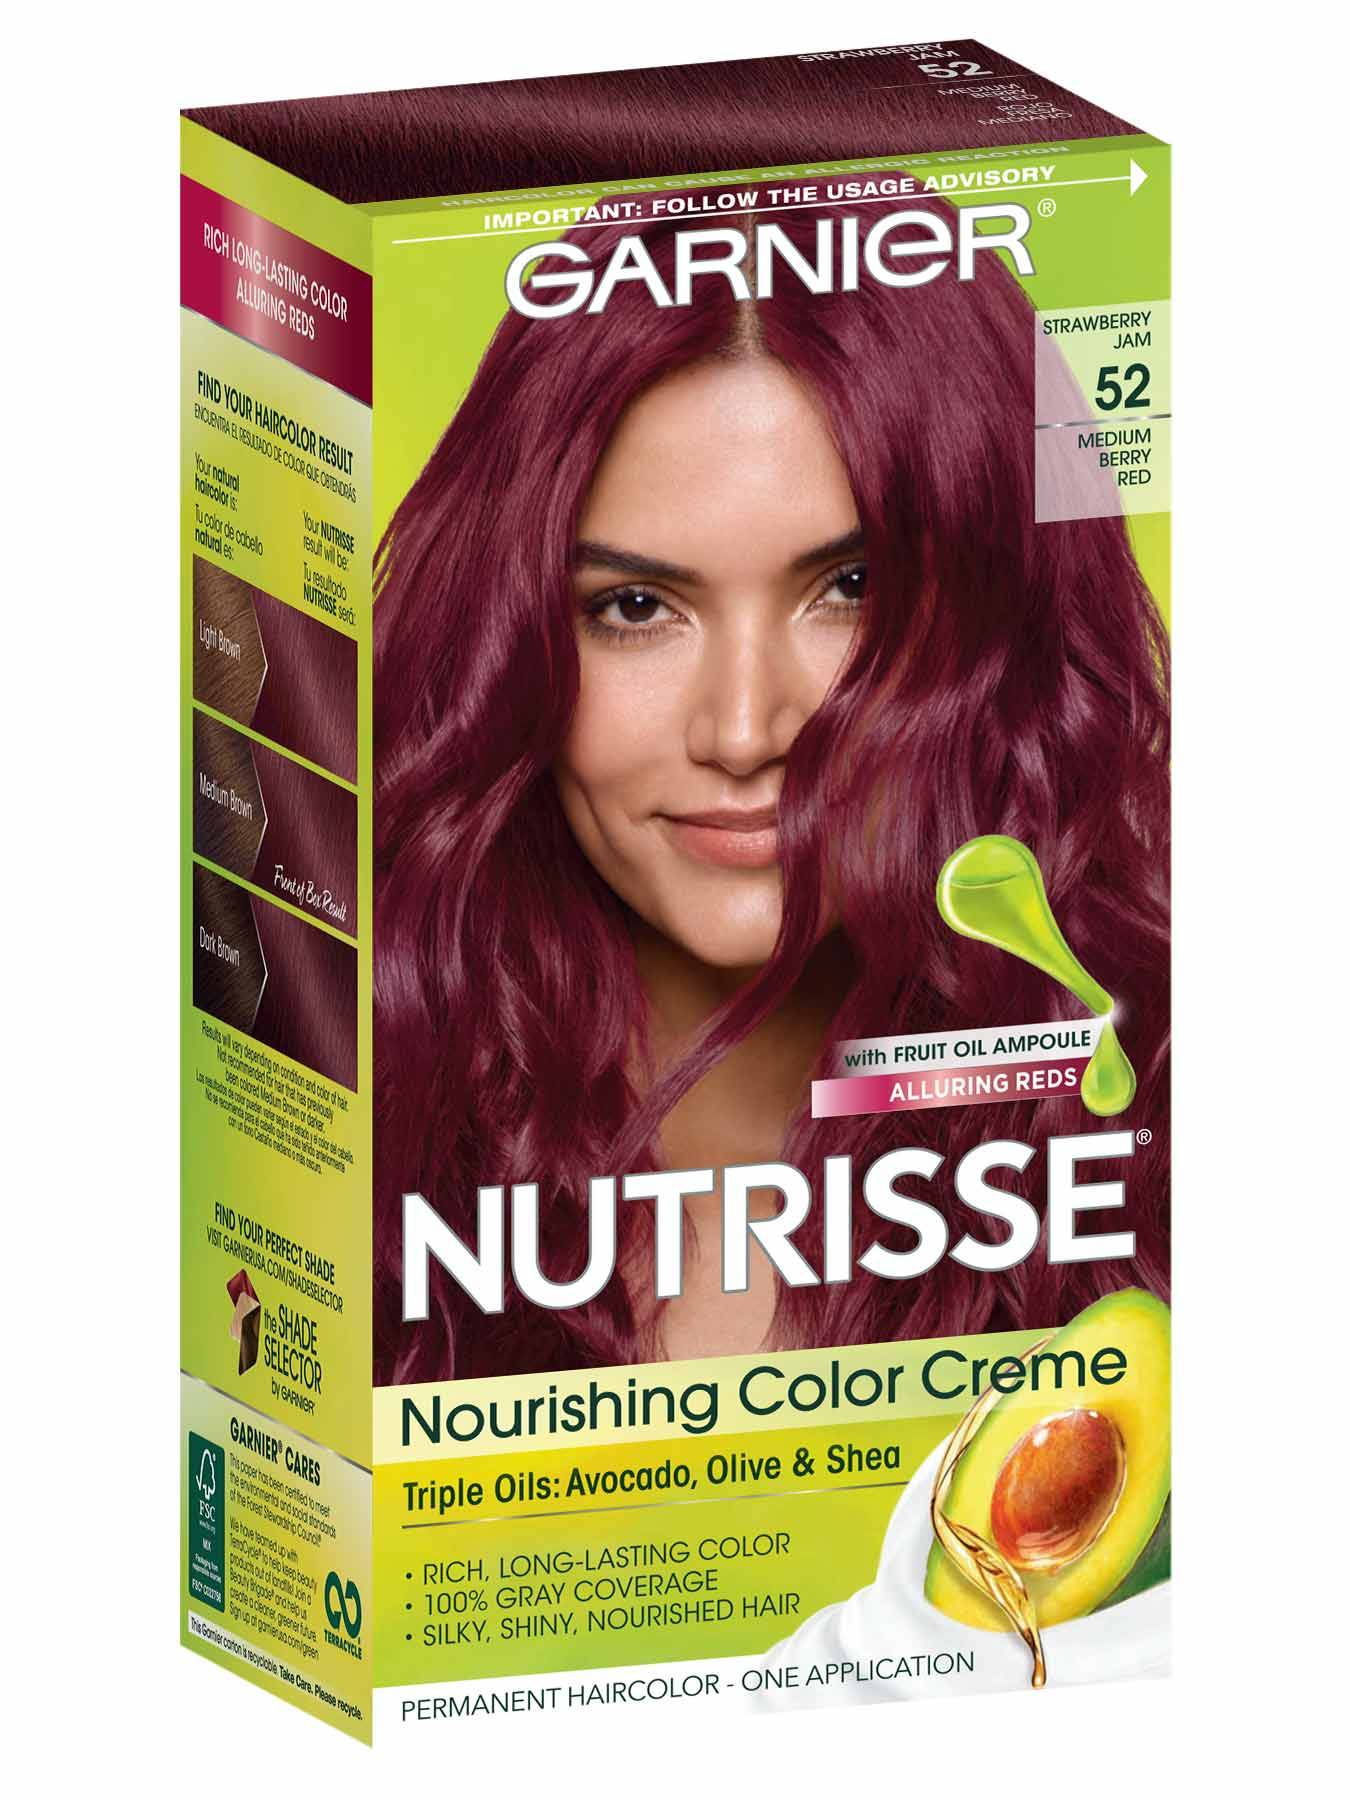 Nutrisse Nourishing Color Creme - Medium Berry Red 52 - Garnier